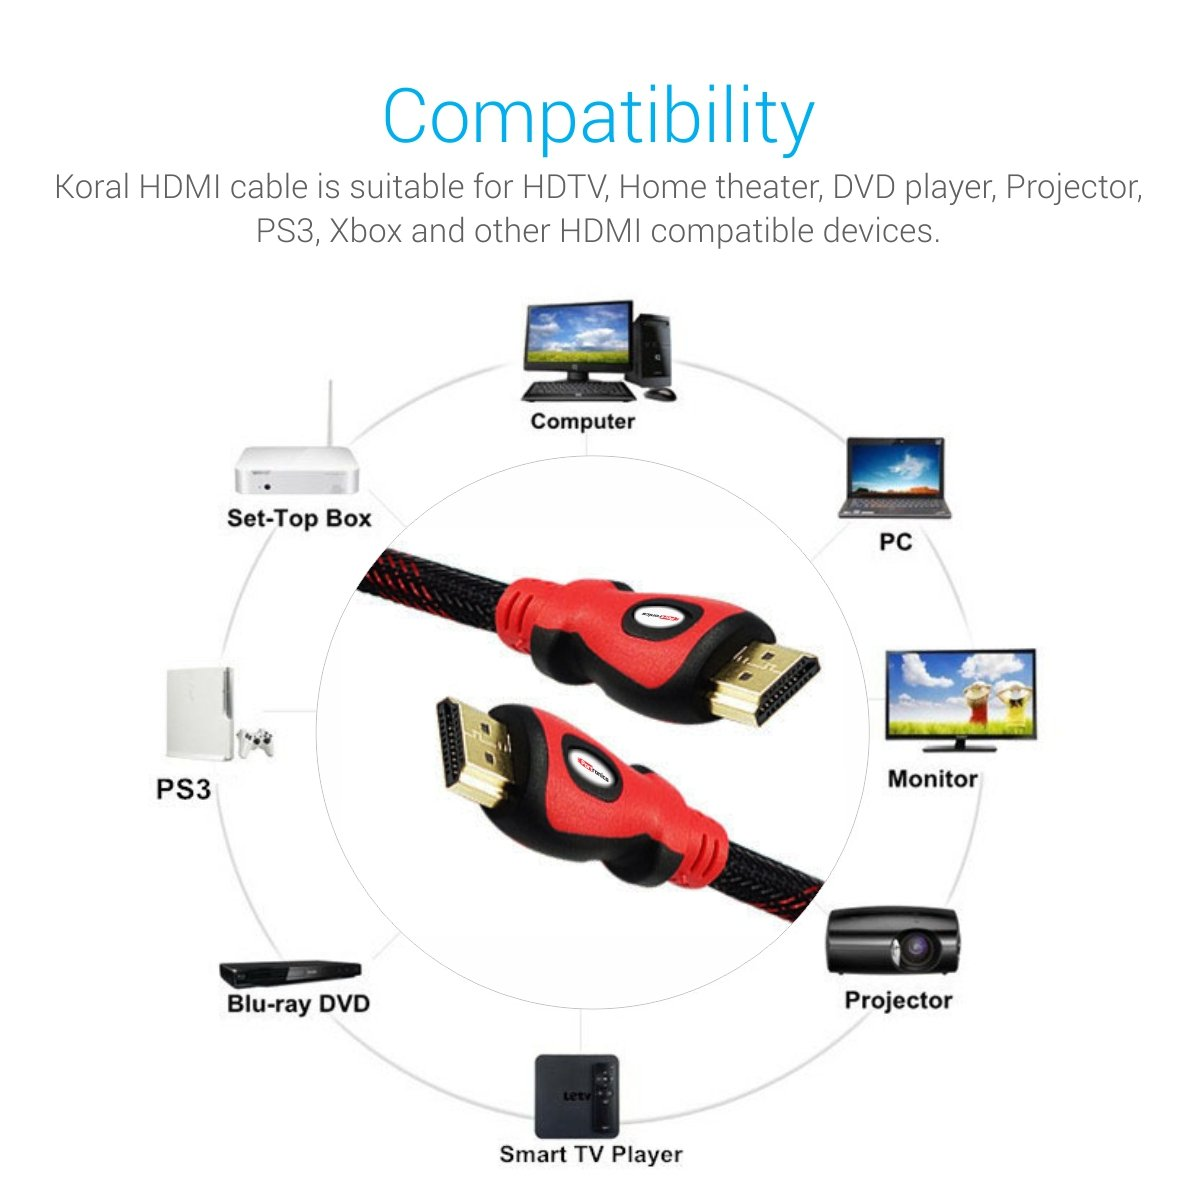 Buy Portronics Por 635 Koral Male To Hdmi Cable For Hdtv Home Smart Tv Theater Wiring Diagram Dvd Player Projector Ps3 Xbox Online At Low Prices In India